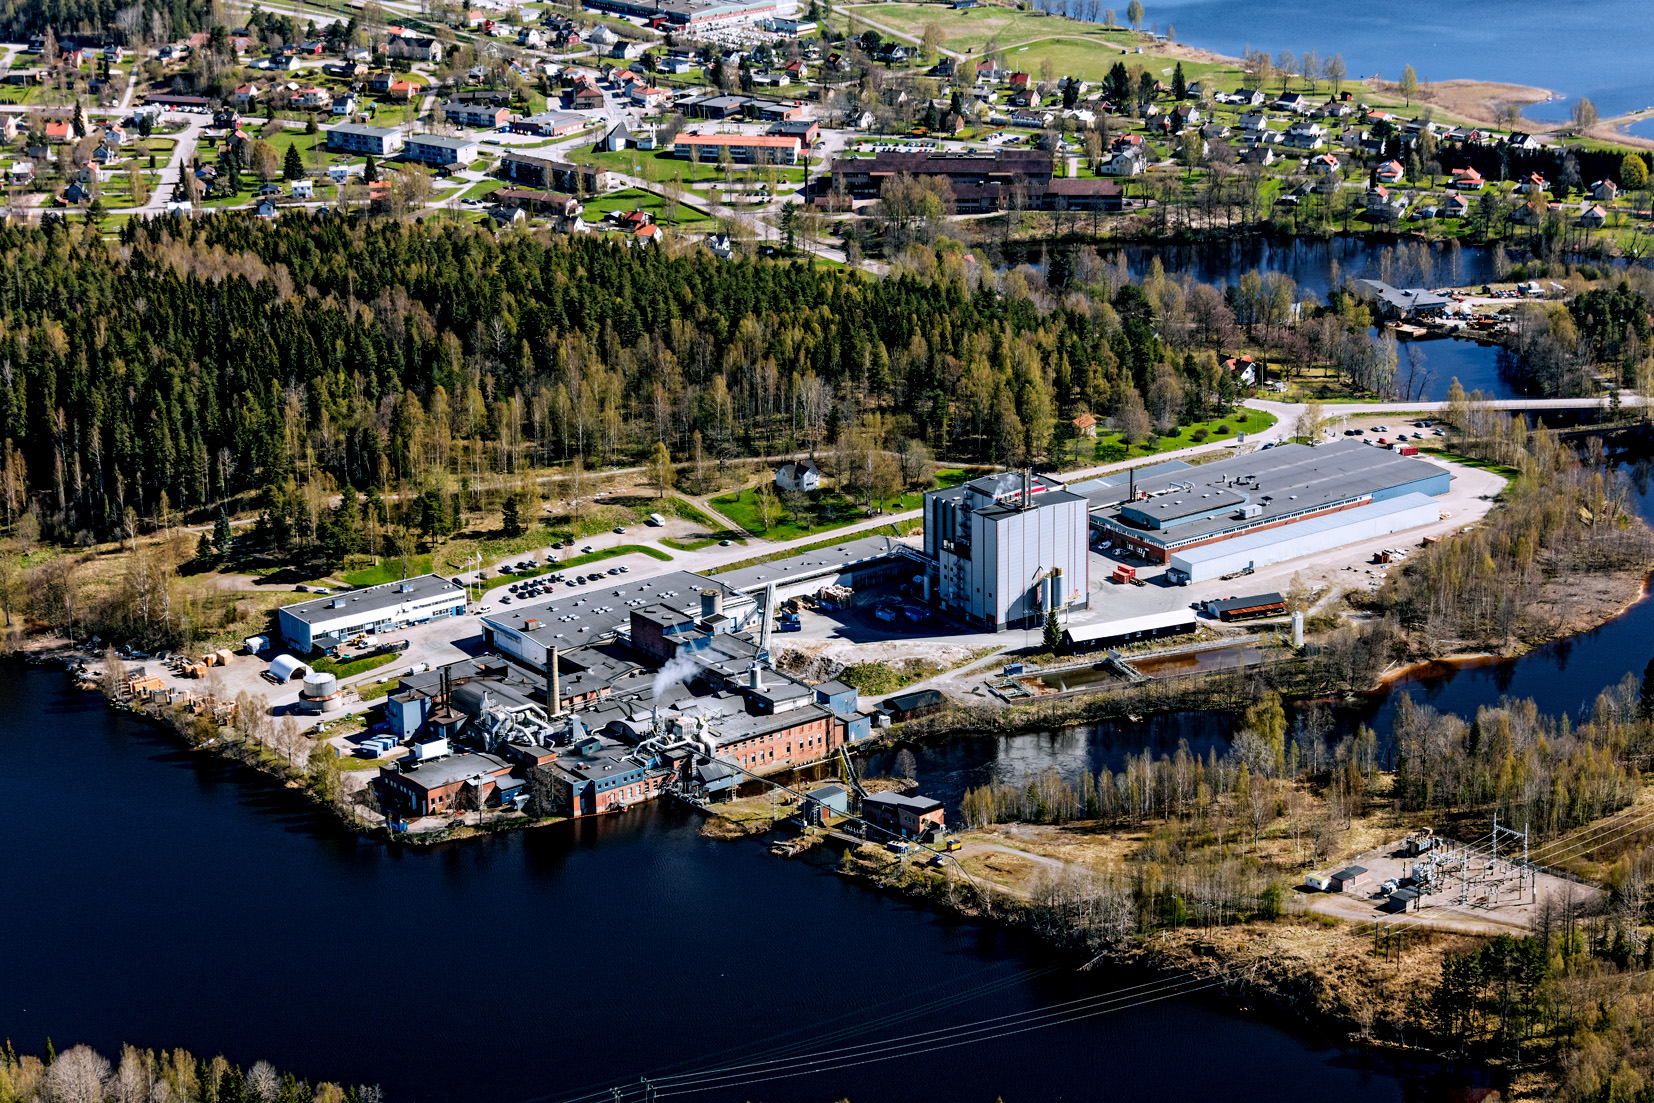 Nordic Paper Åmotfors continues expansion of vibration monitoring with HD technology on PM6